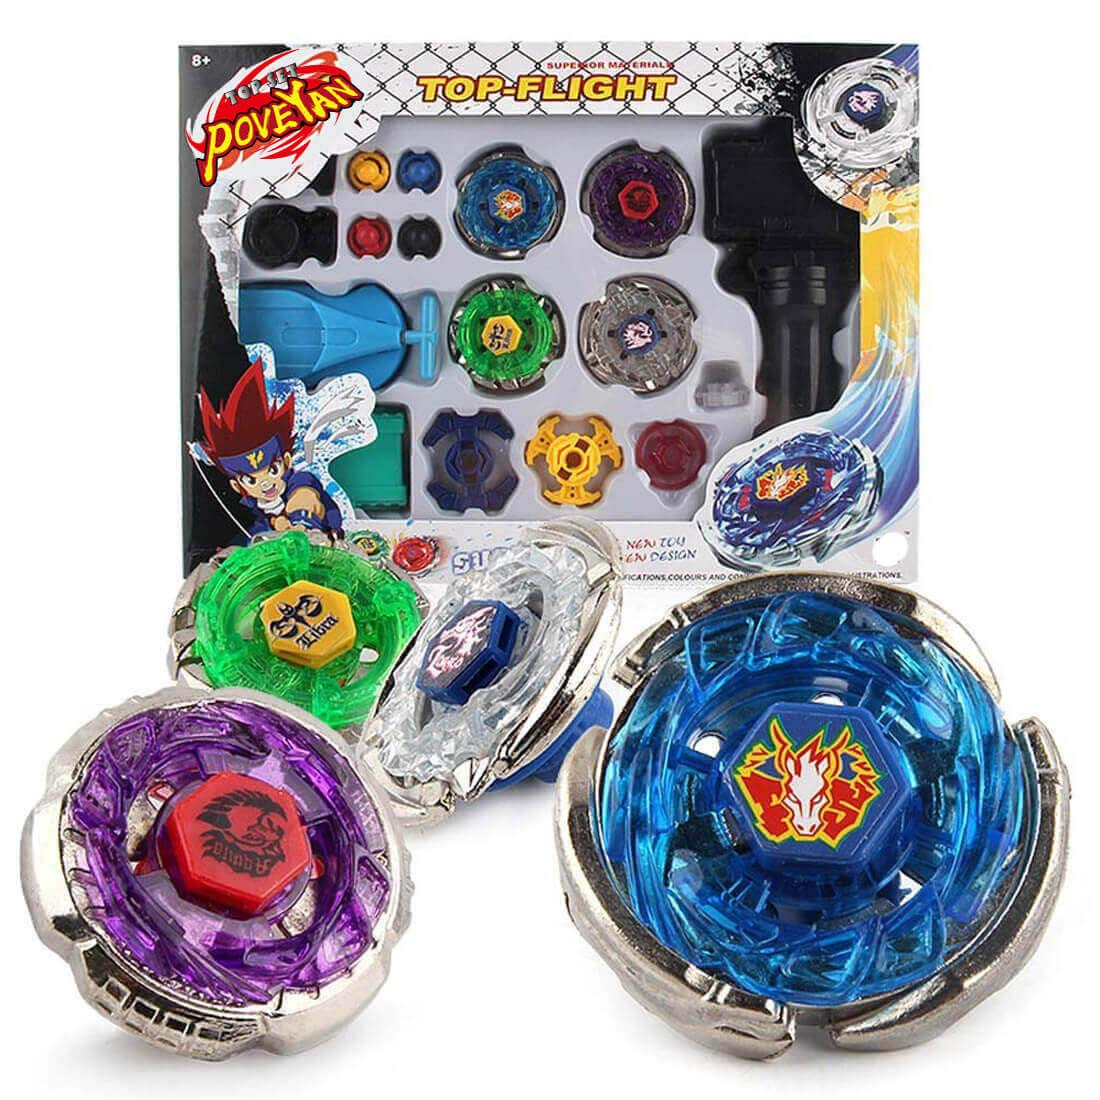 Poveyan Metal Master Fusion Storm Pegasus/Flame Libra/Earth Eagle/ Lightning L-Drago with 4D Launcher Grip Gyro Top Set by Poveyan